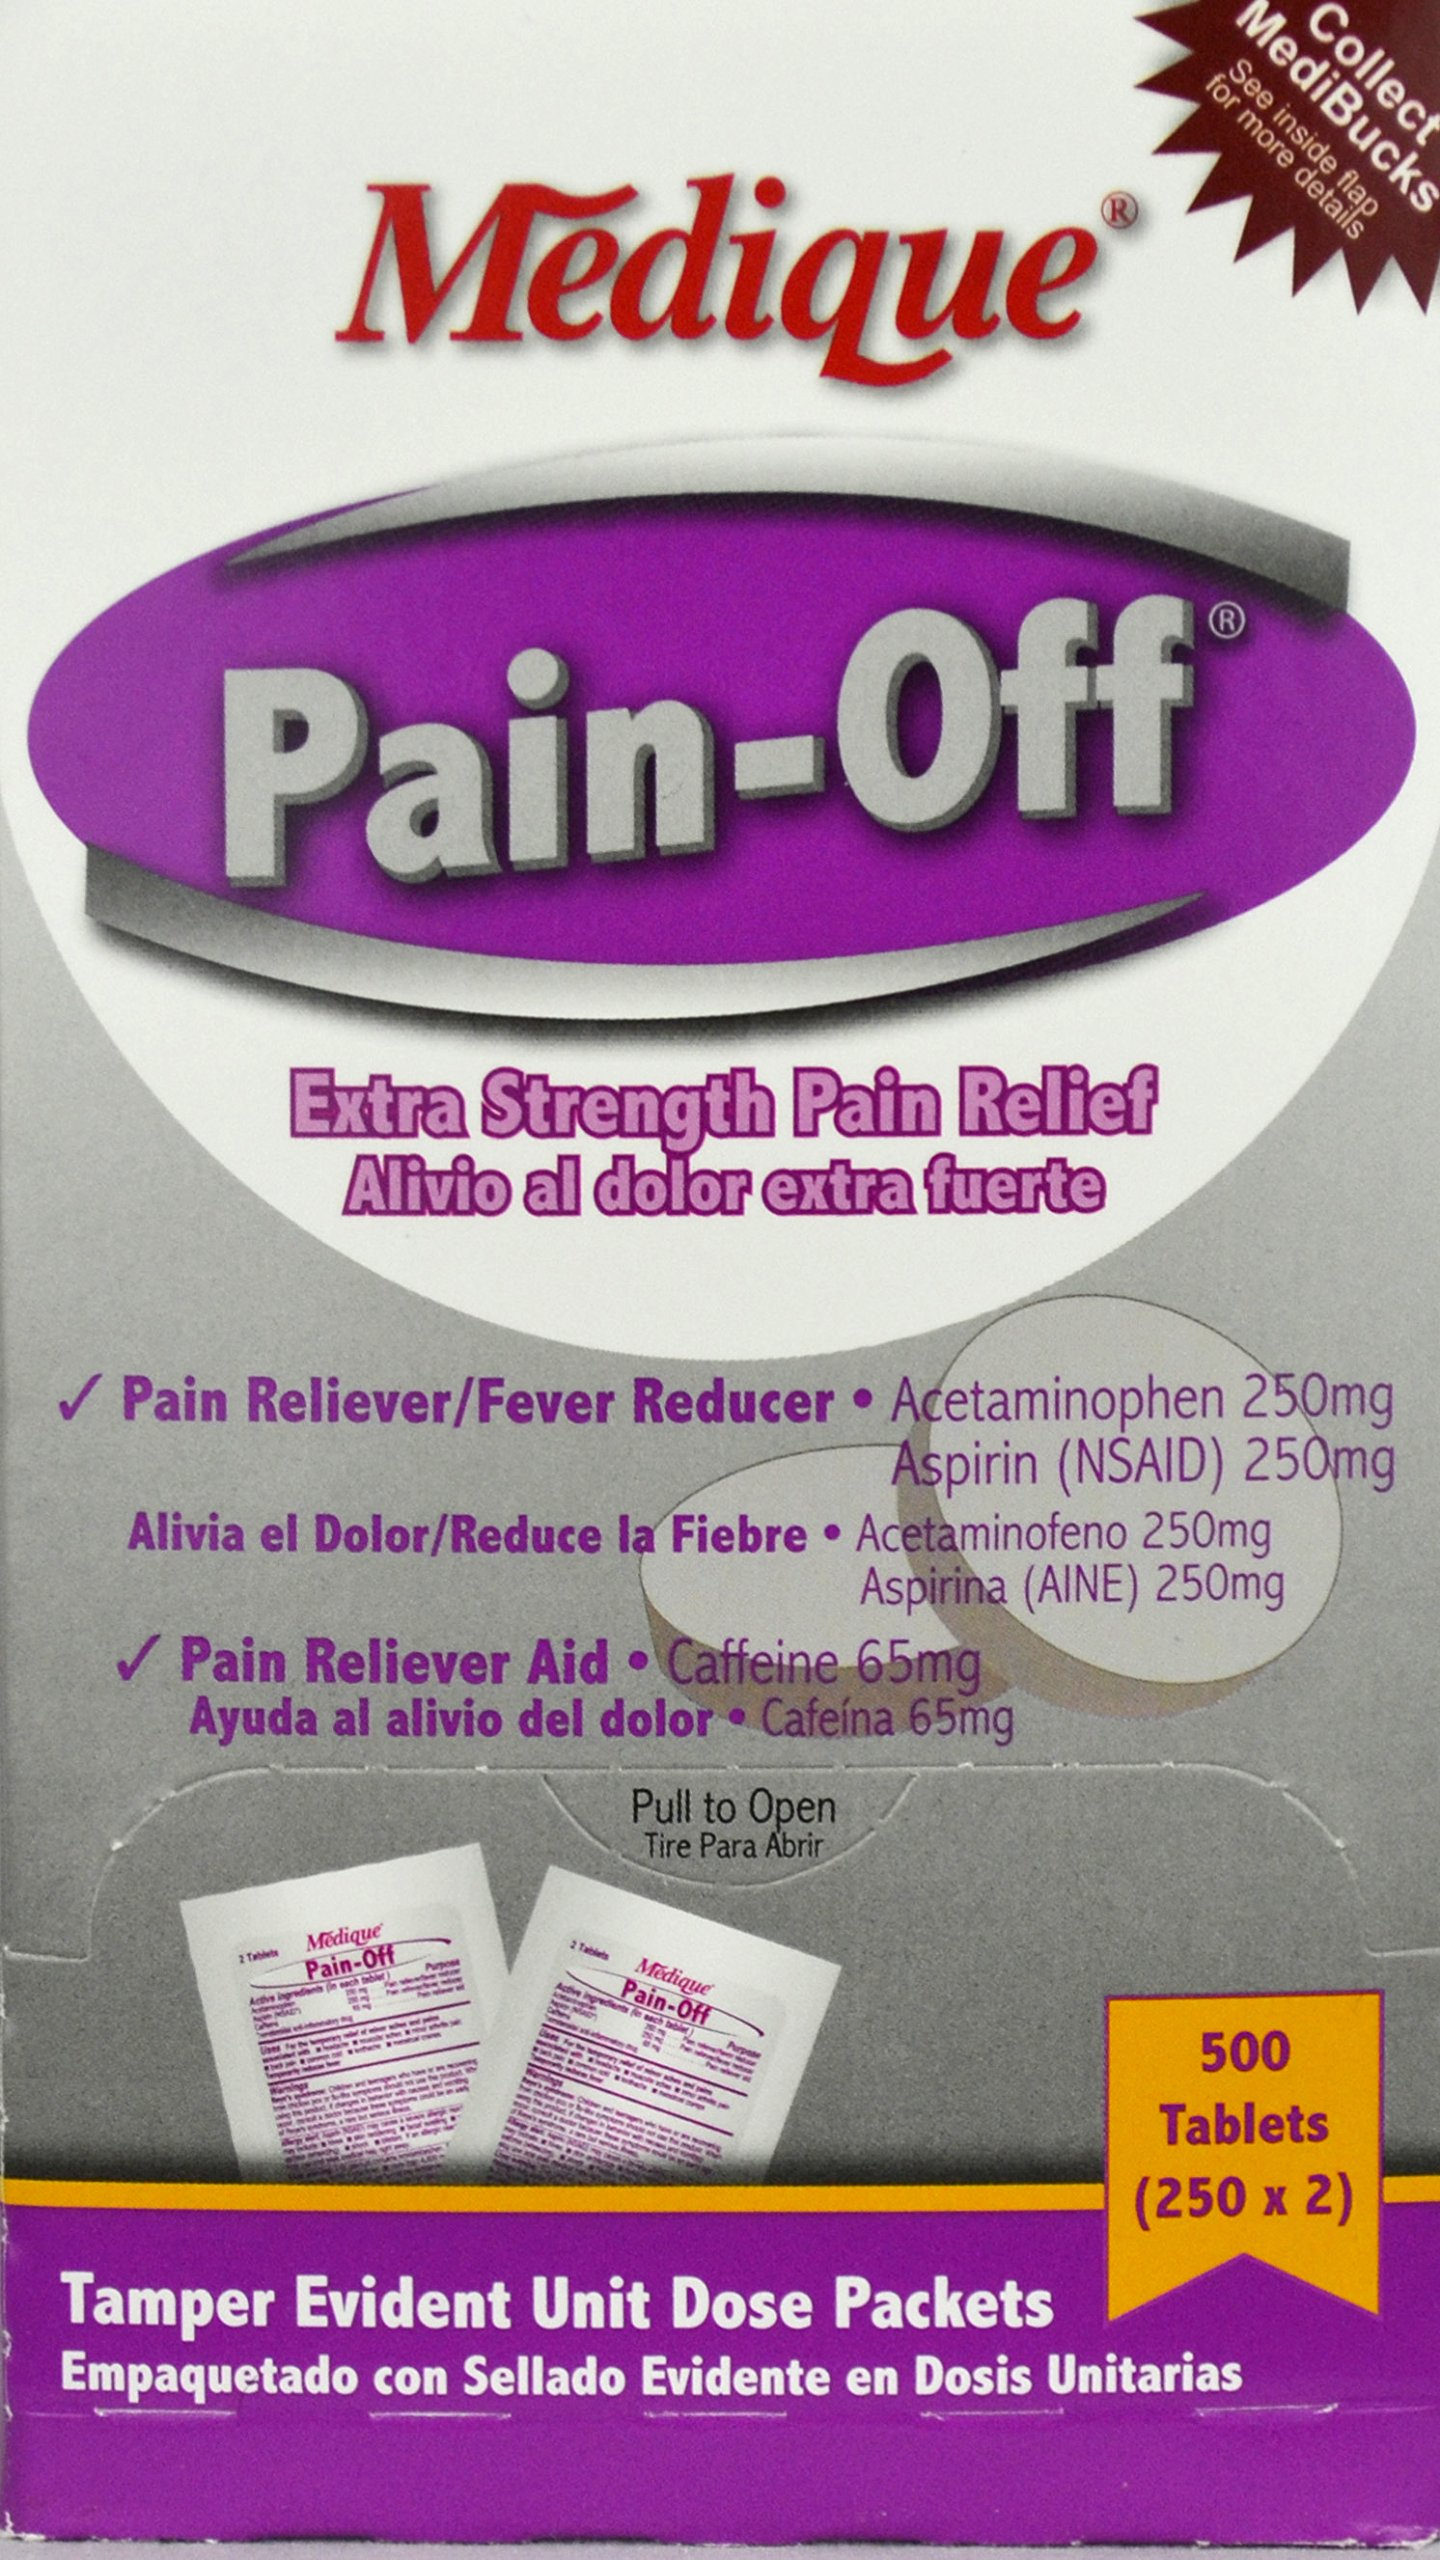 Pain-Off Extra Strength Pain Reliever Tablets (500 Tab. /Box) 6 Boxes (3000 tablets) by Medique - MS71175 by Medique